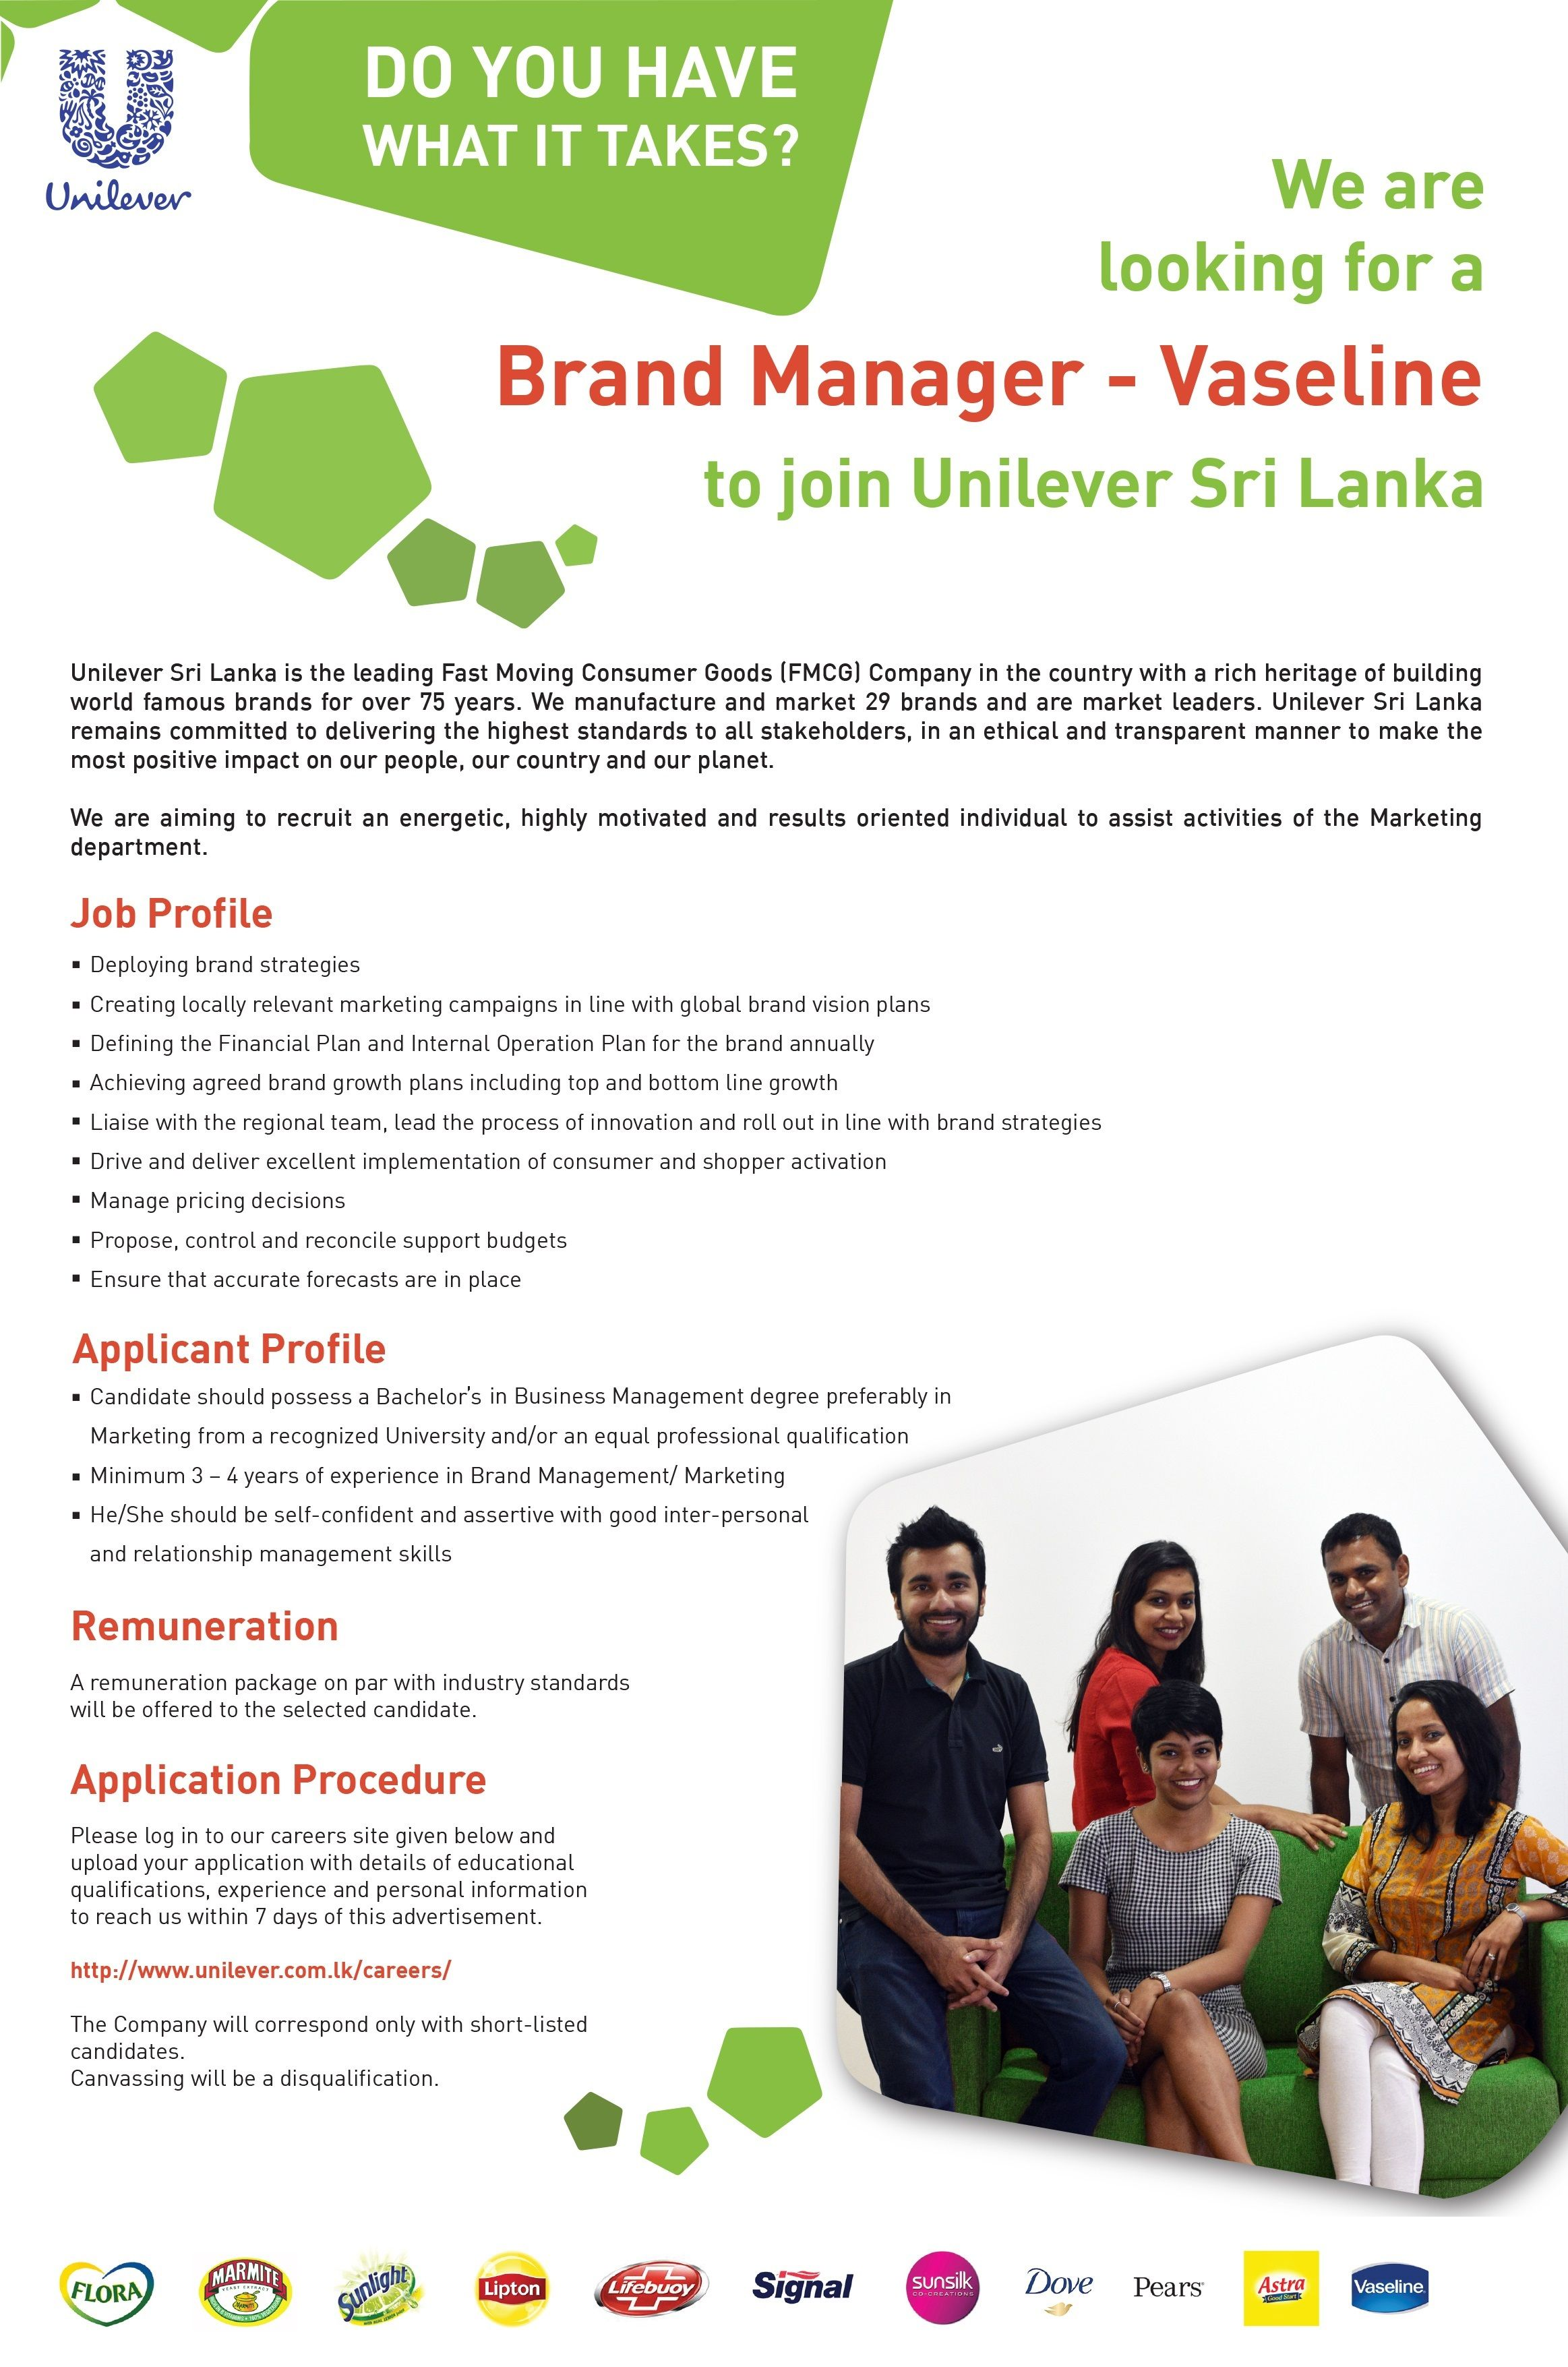 brand manager at unilever sri lanka career first we seek candidater for brand manager position candidate should possess a bachelor s in business management degree preferably in marketing from a recognized